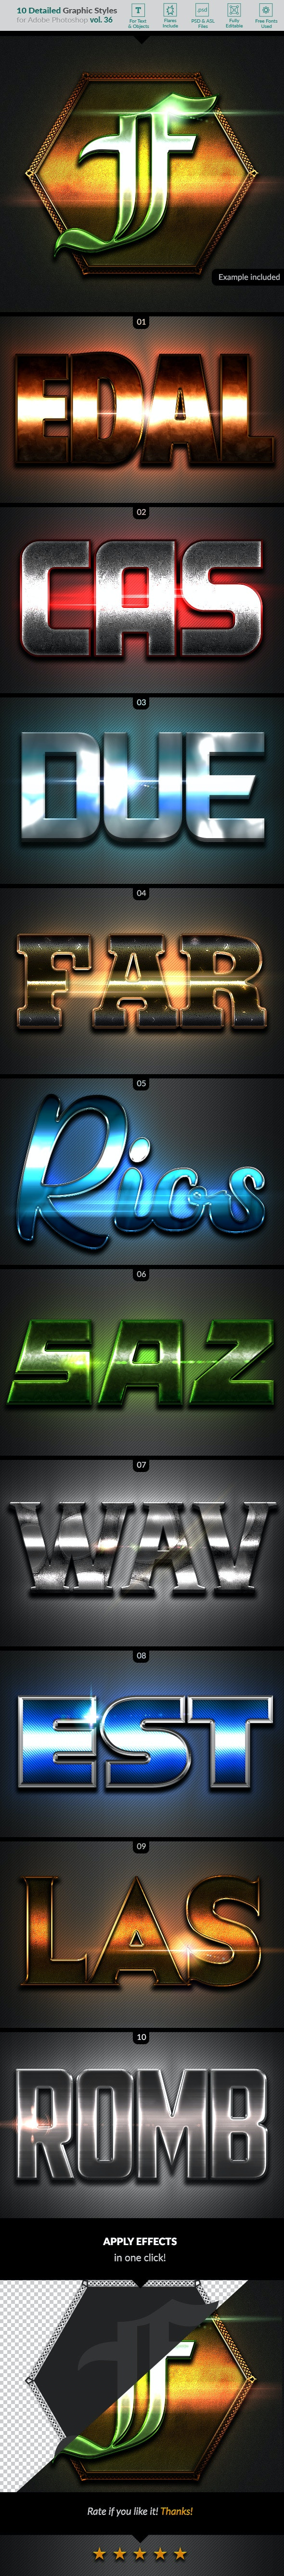 10 Text Effects Vol. 36 - Styles Photoshop